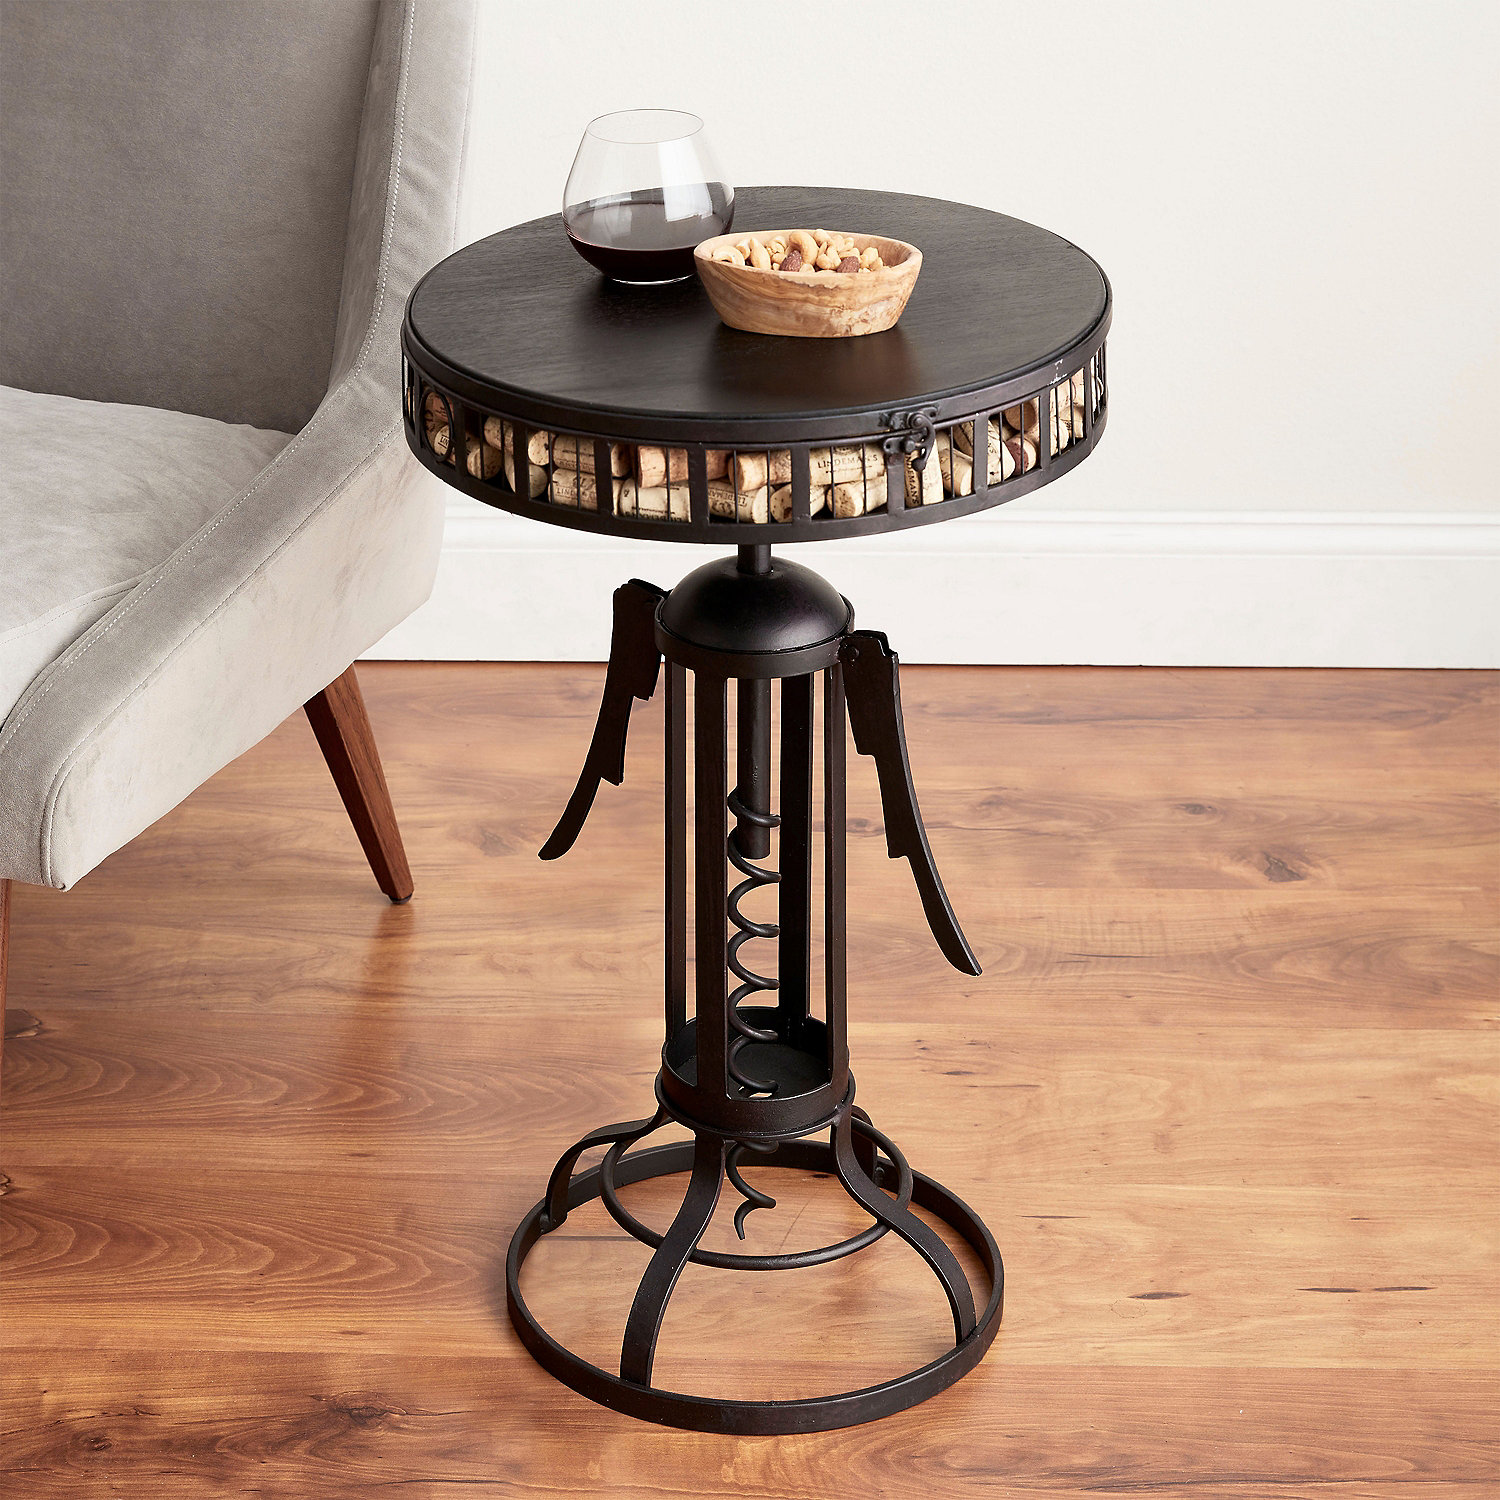 winged corkscrew cork catcher accent table wine enthusiast decor zebra furniture outdoor mosaic bistro and chairs ikea accessories white wicker cement top small round black glass